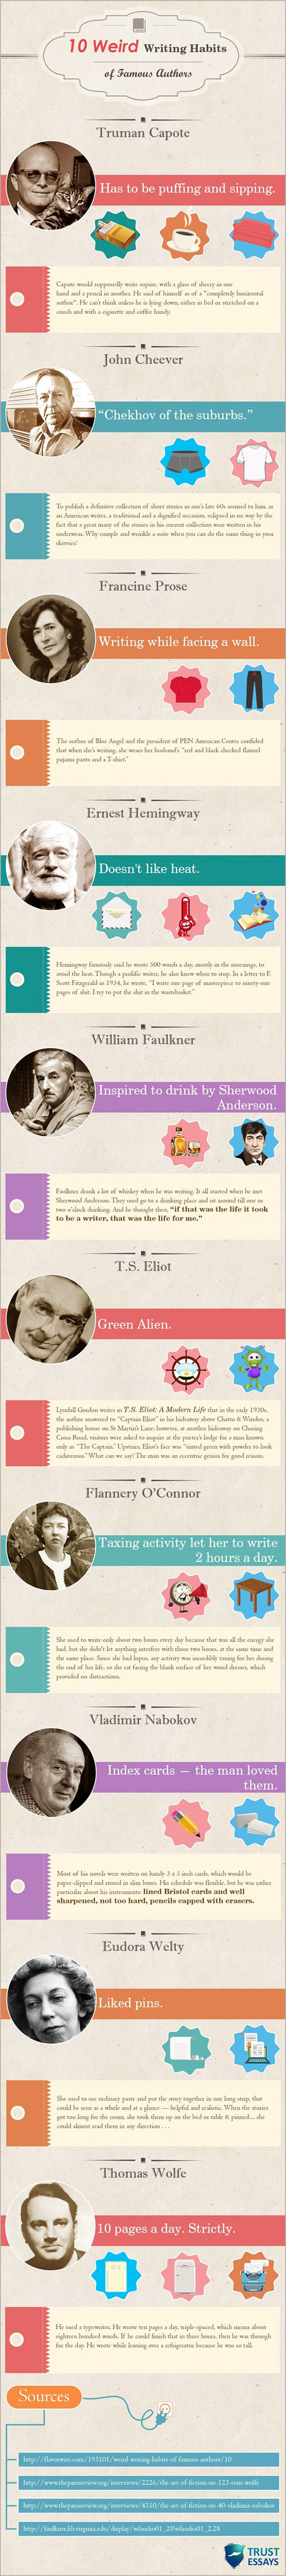 Infographic: 10 weird writing habits of famous authors